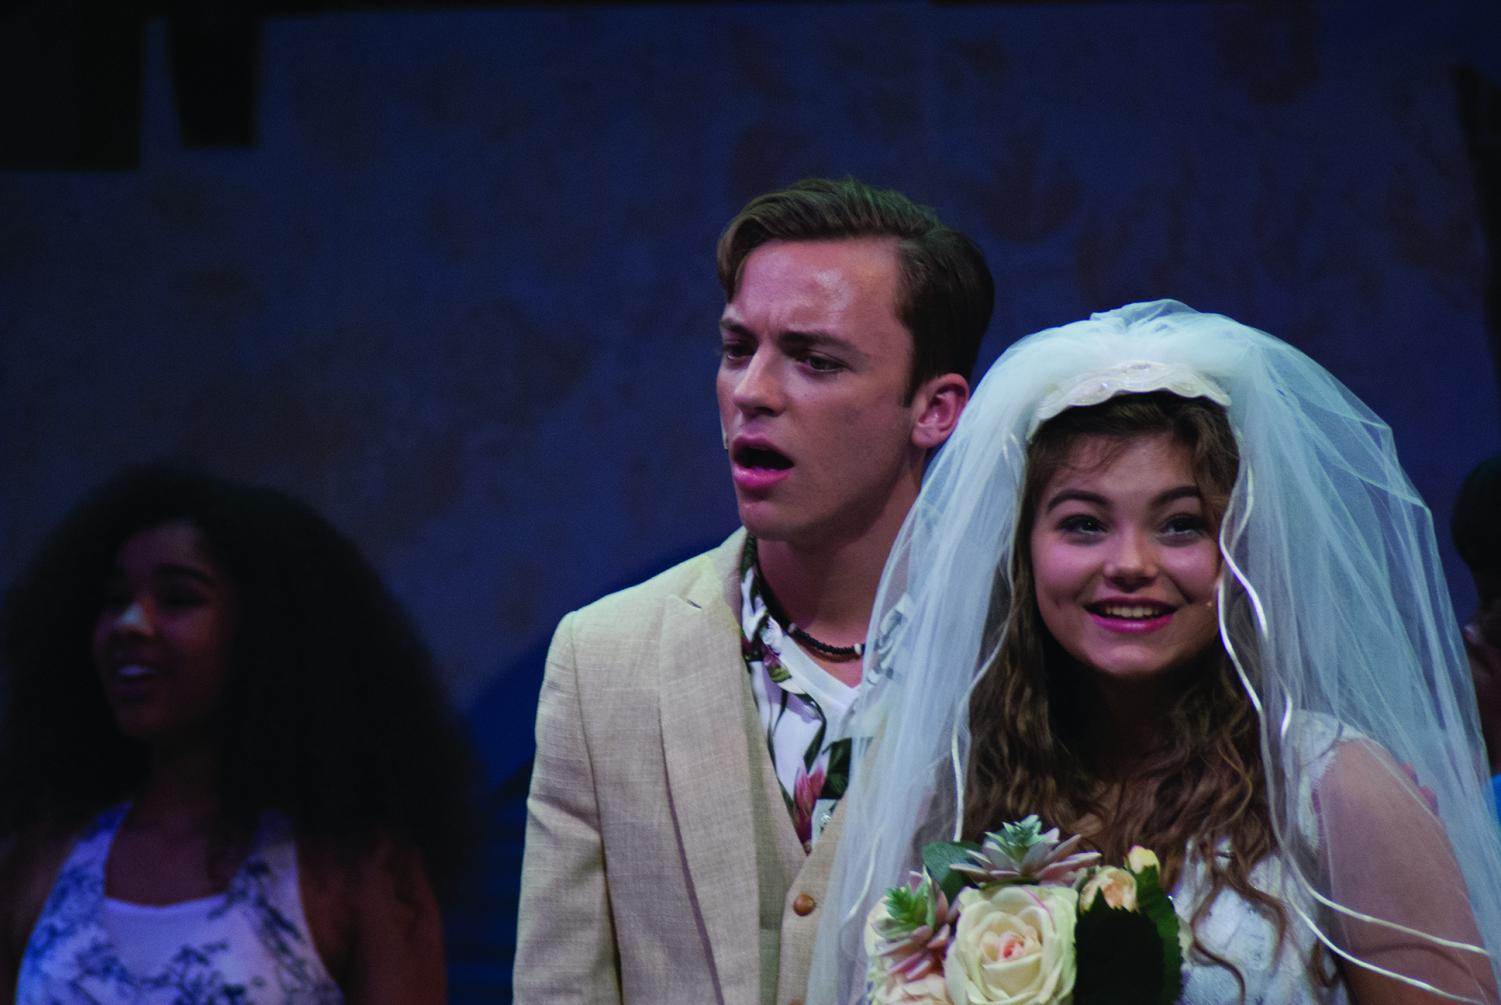 Juniors Heath Jackson and Laura Bernius performing as Sky and Sophie on premiere night of the Mamma Mia show.